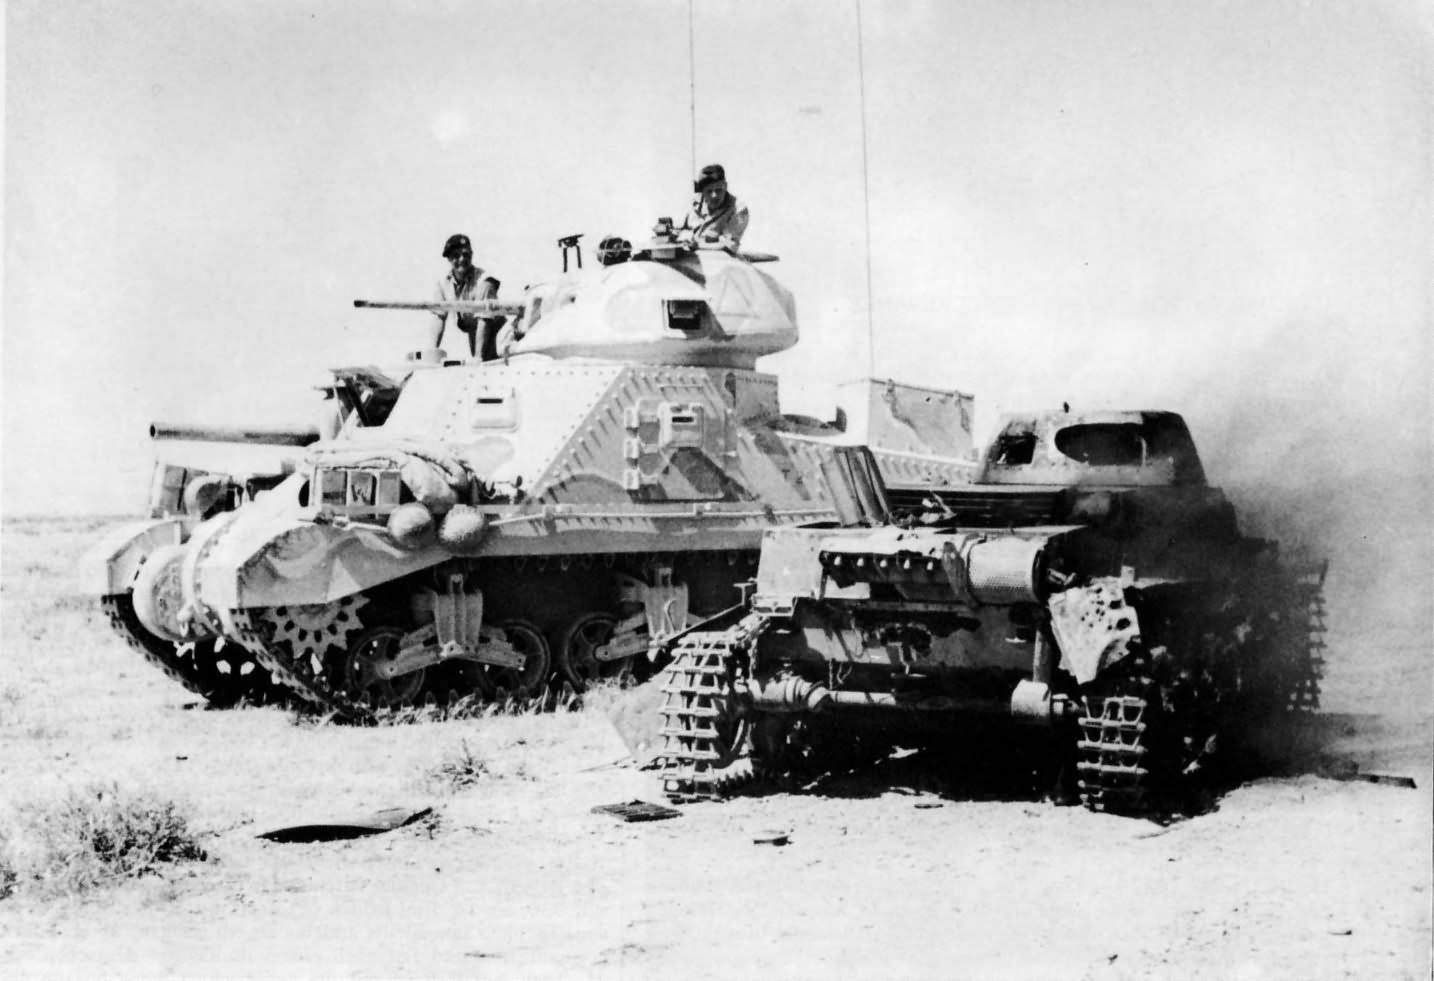 m3 grant tank of the 1st armoured division and